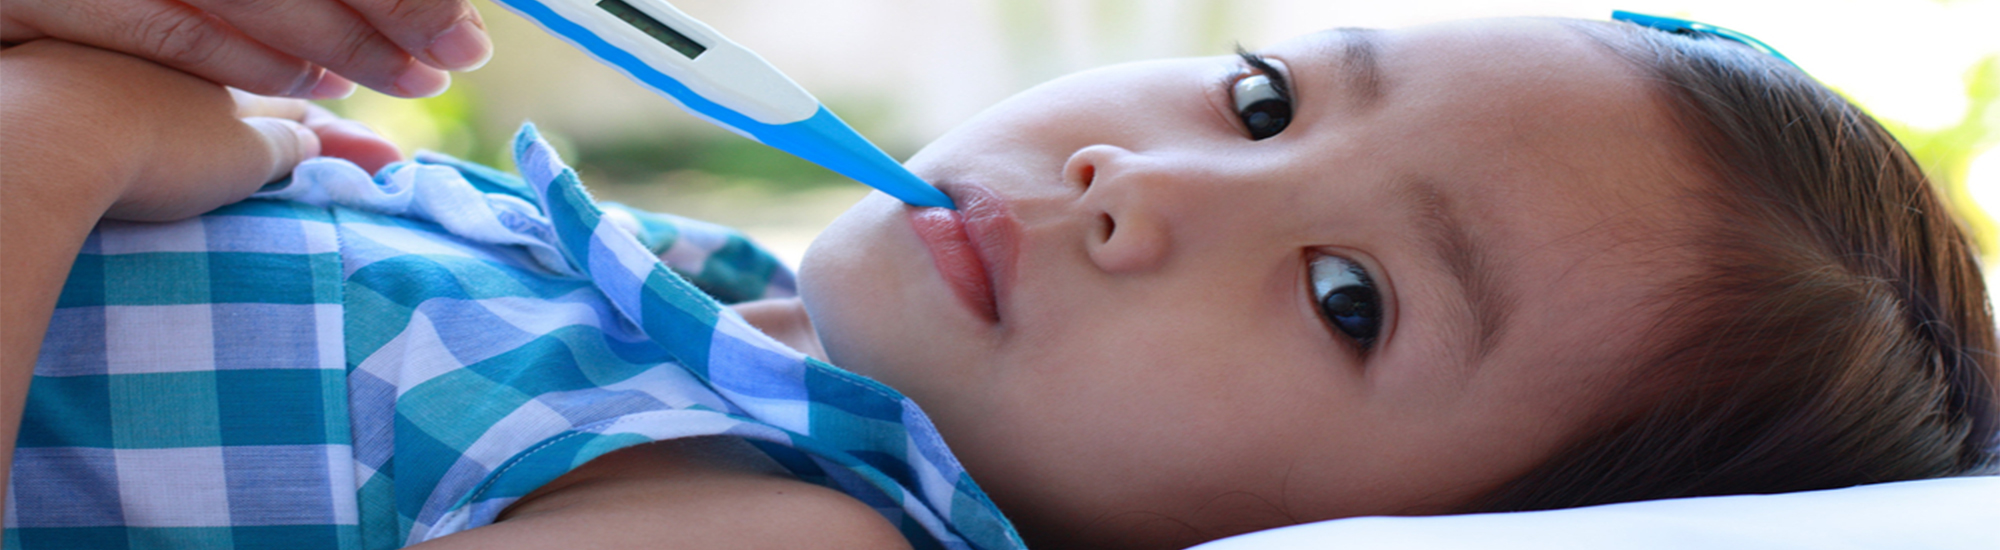 Ayurvedic treatment for Fever in kids